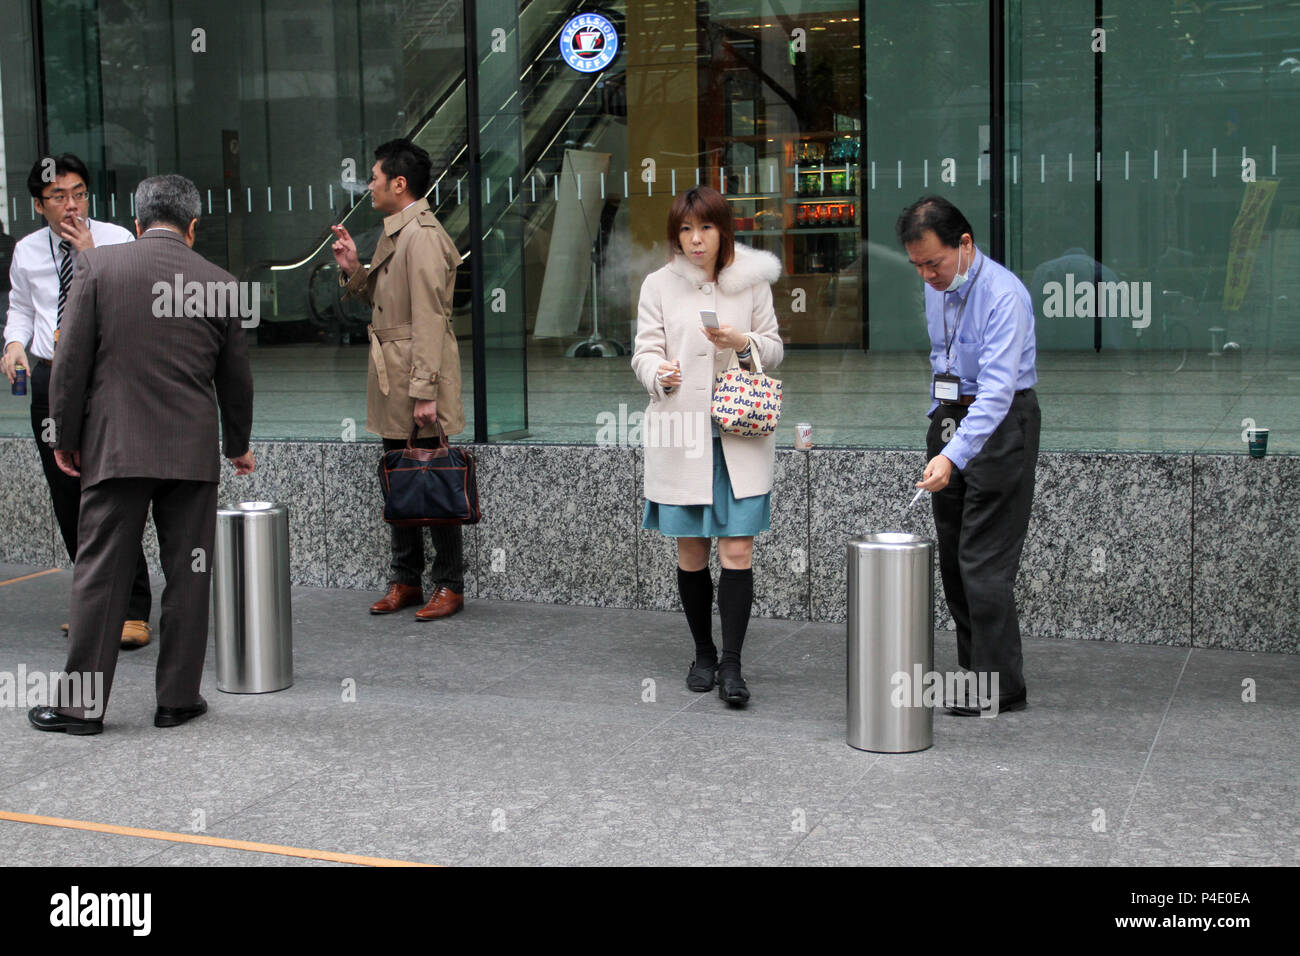 Japanese people smoke cigarettes in a special  smoking area on the street of Tokyo, Japan – jan, 24, 2011. Stock Photo